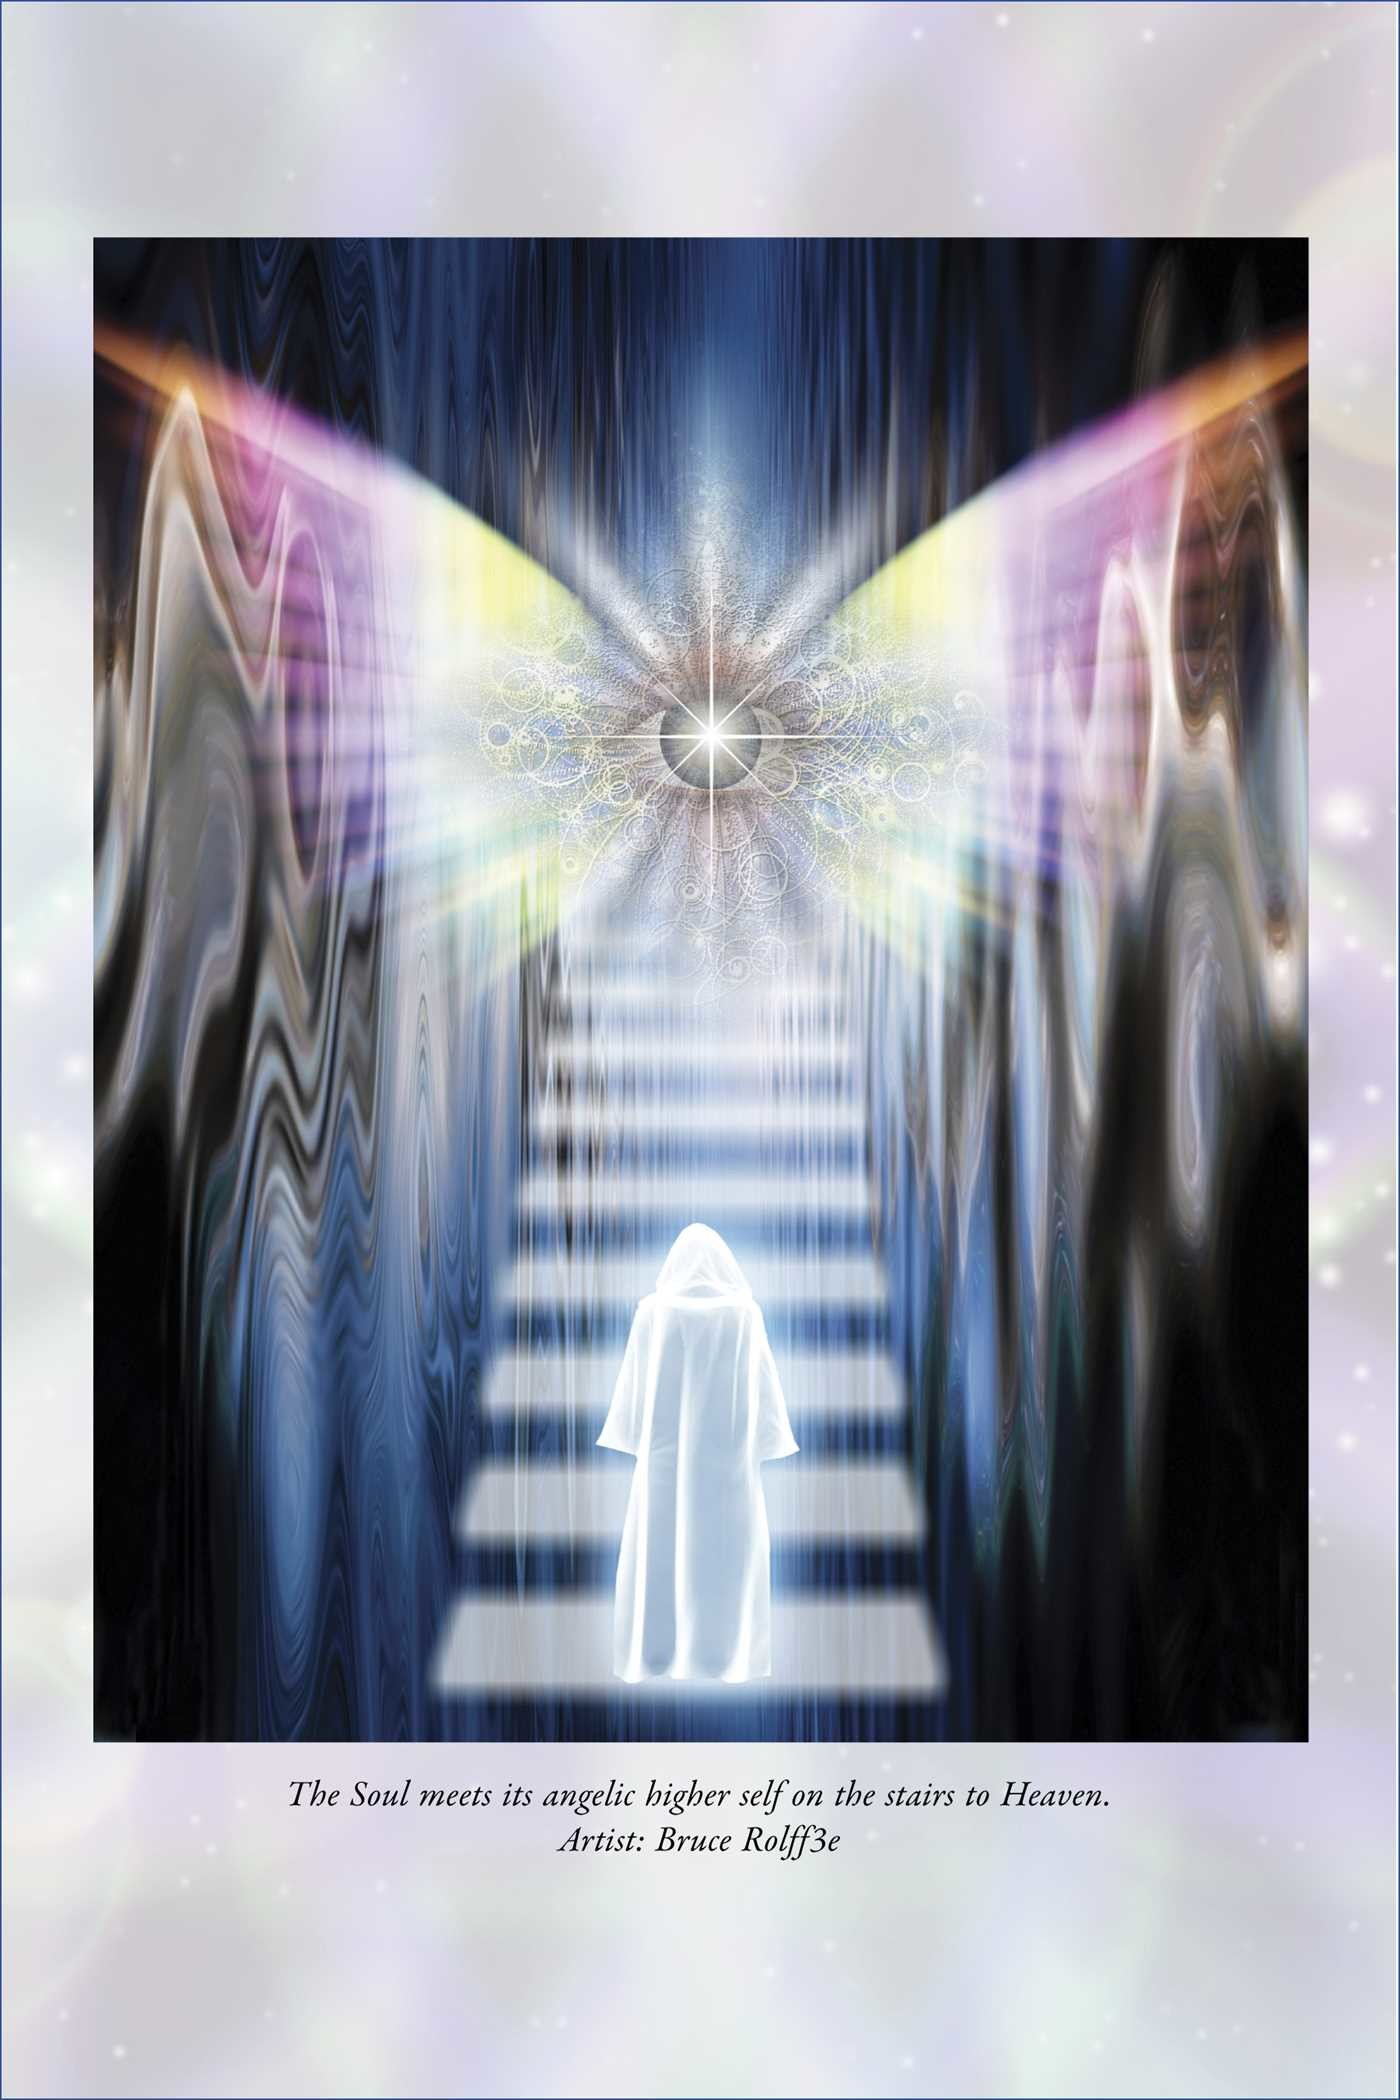 The angelic origins of the soul 9781591432715.in01